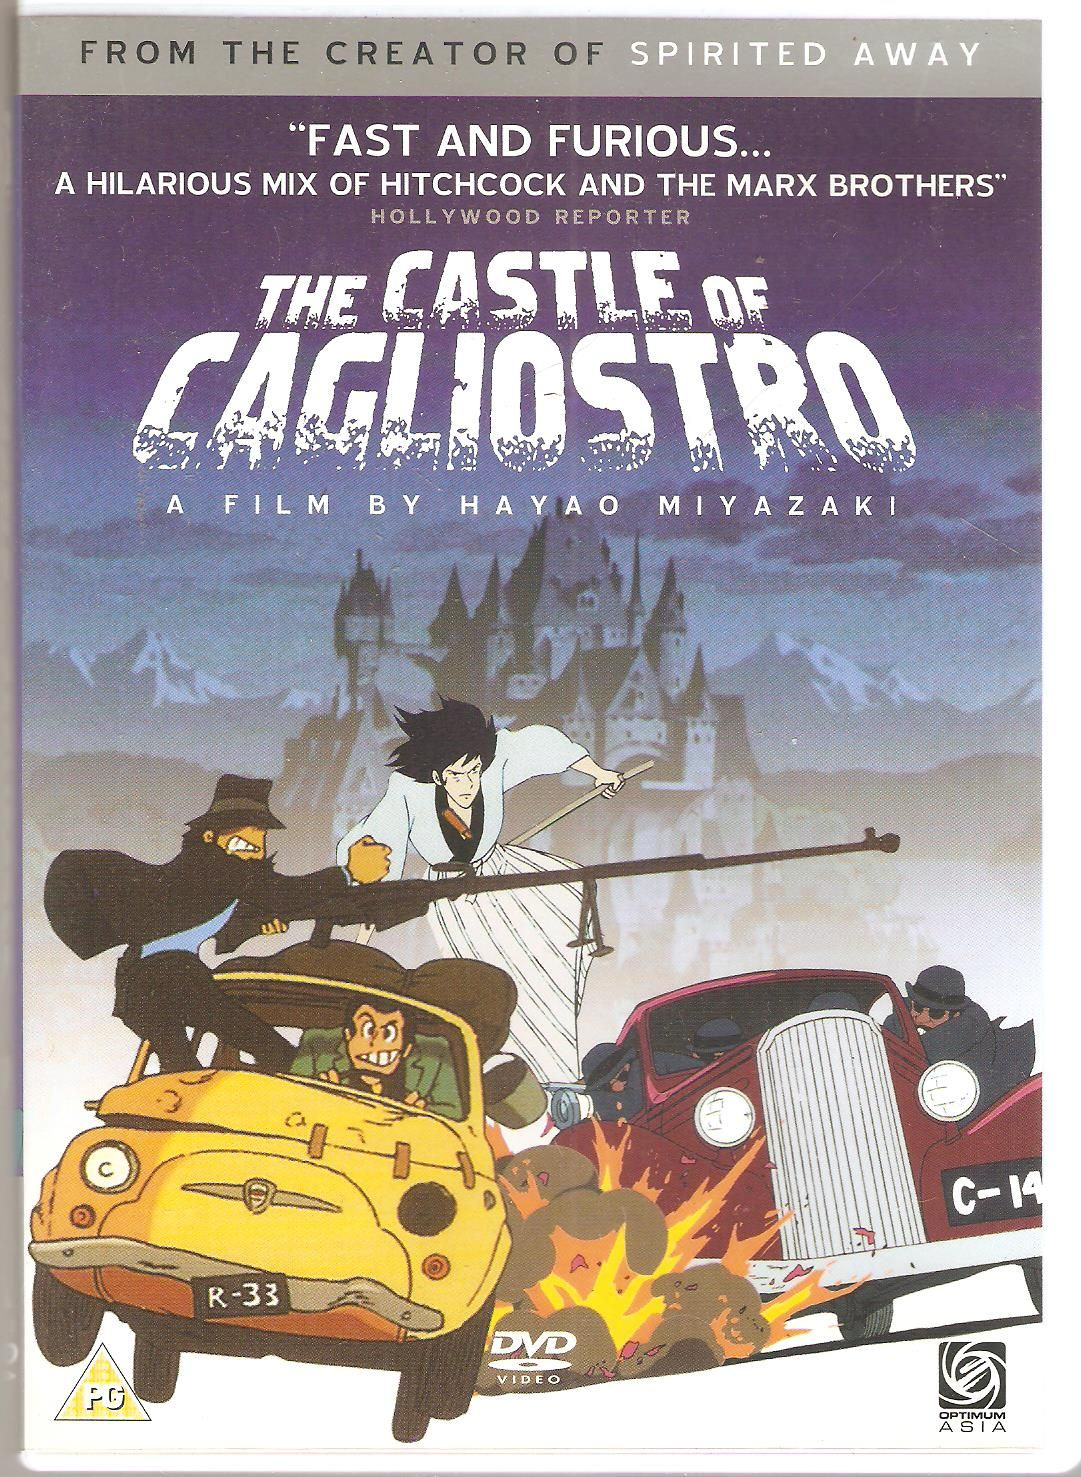 The Castle of Cagliostro. Lupin iii, Japanese animated